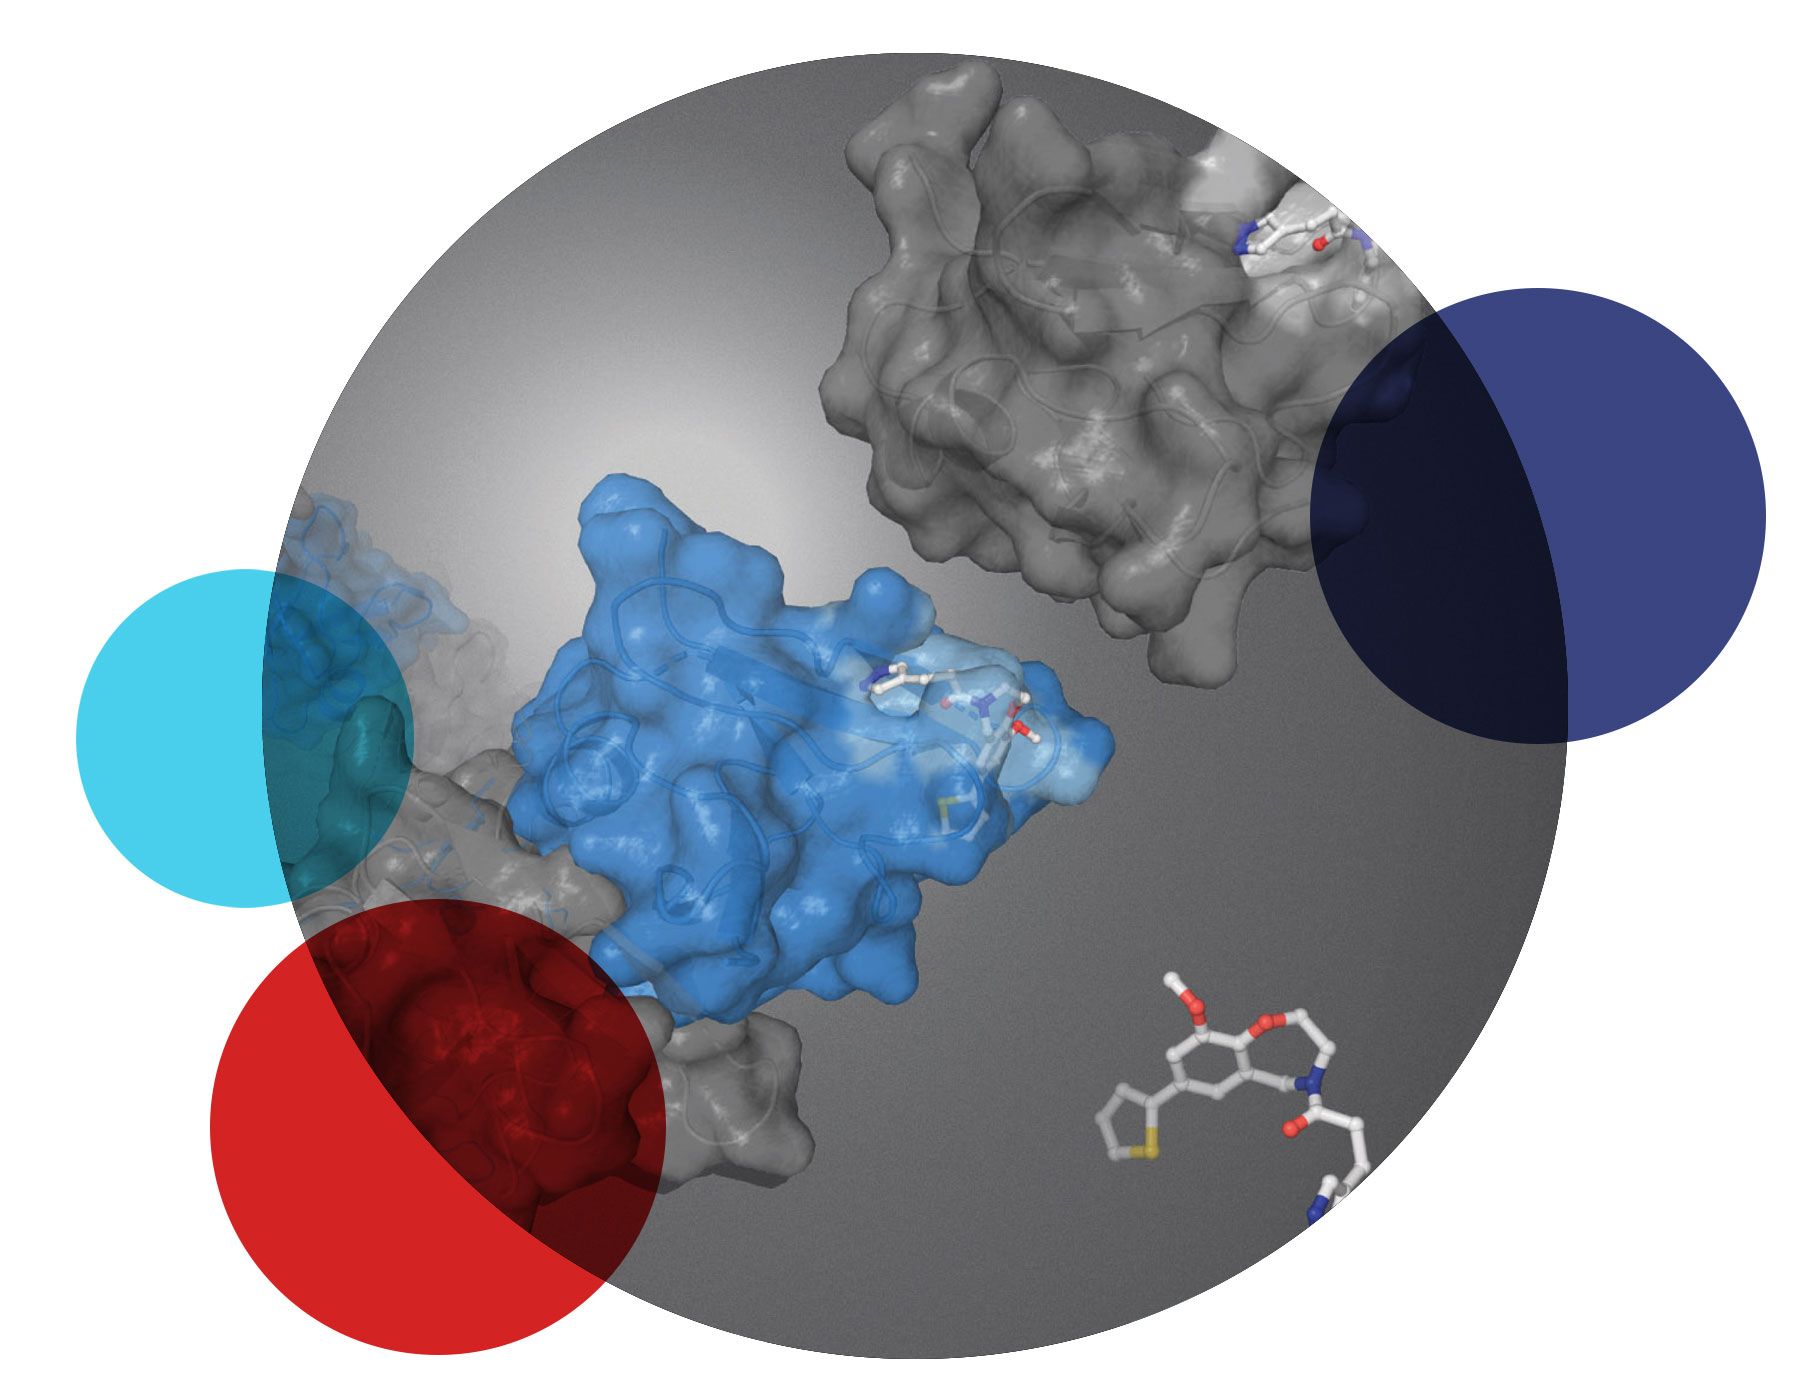 IMAGE: In silico docking OR In silico simulation of protein binding pocket interactions